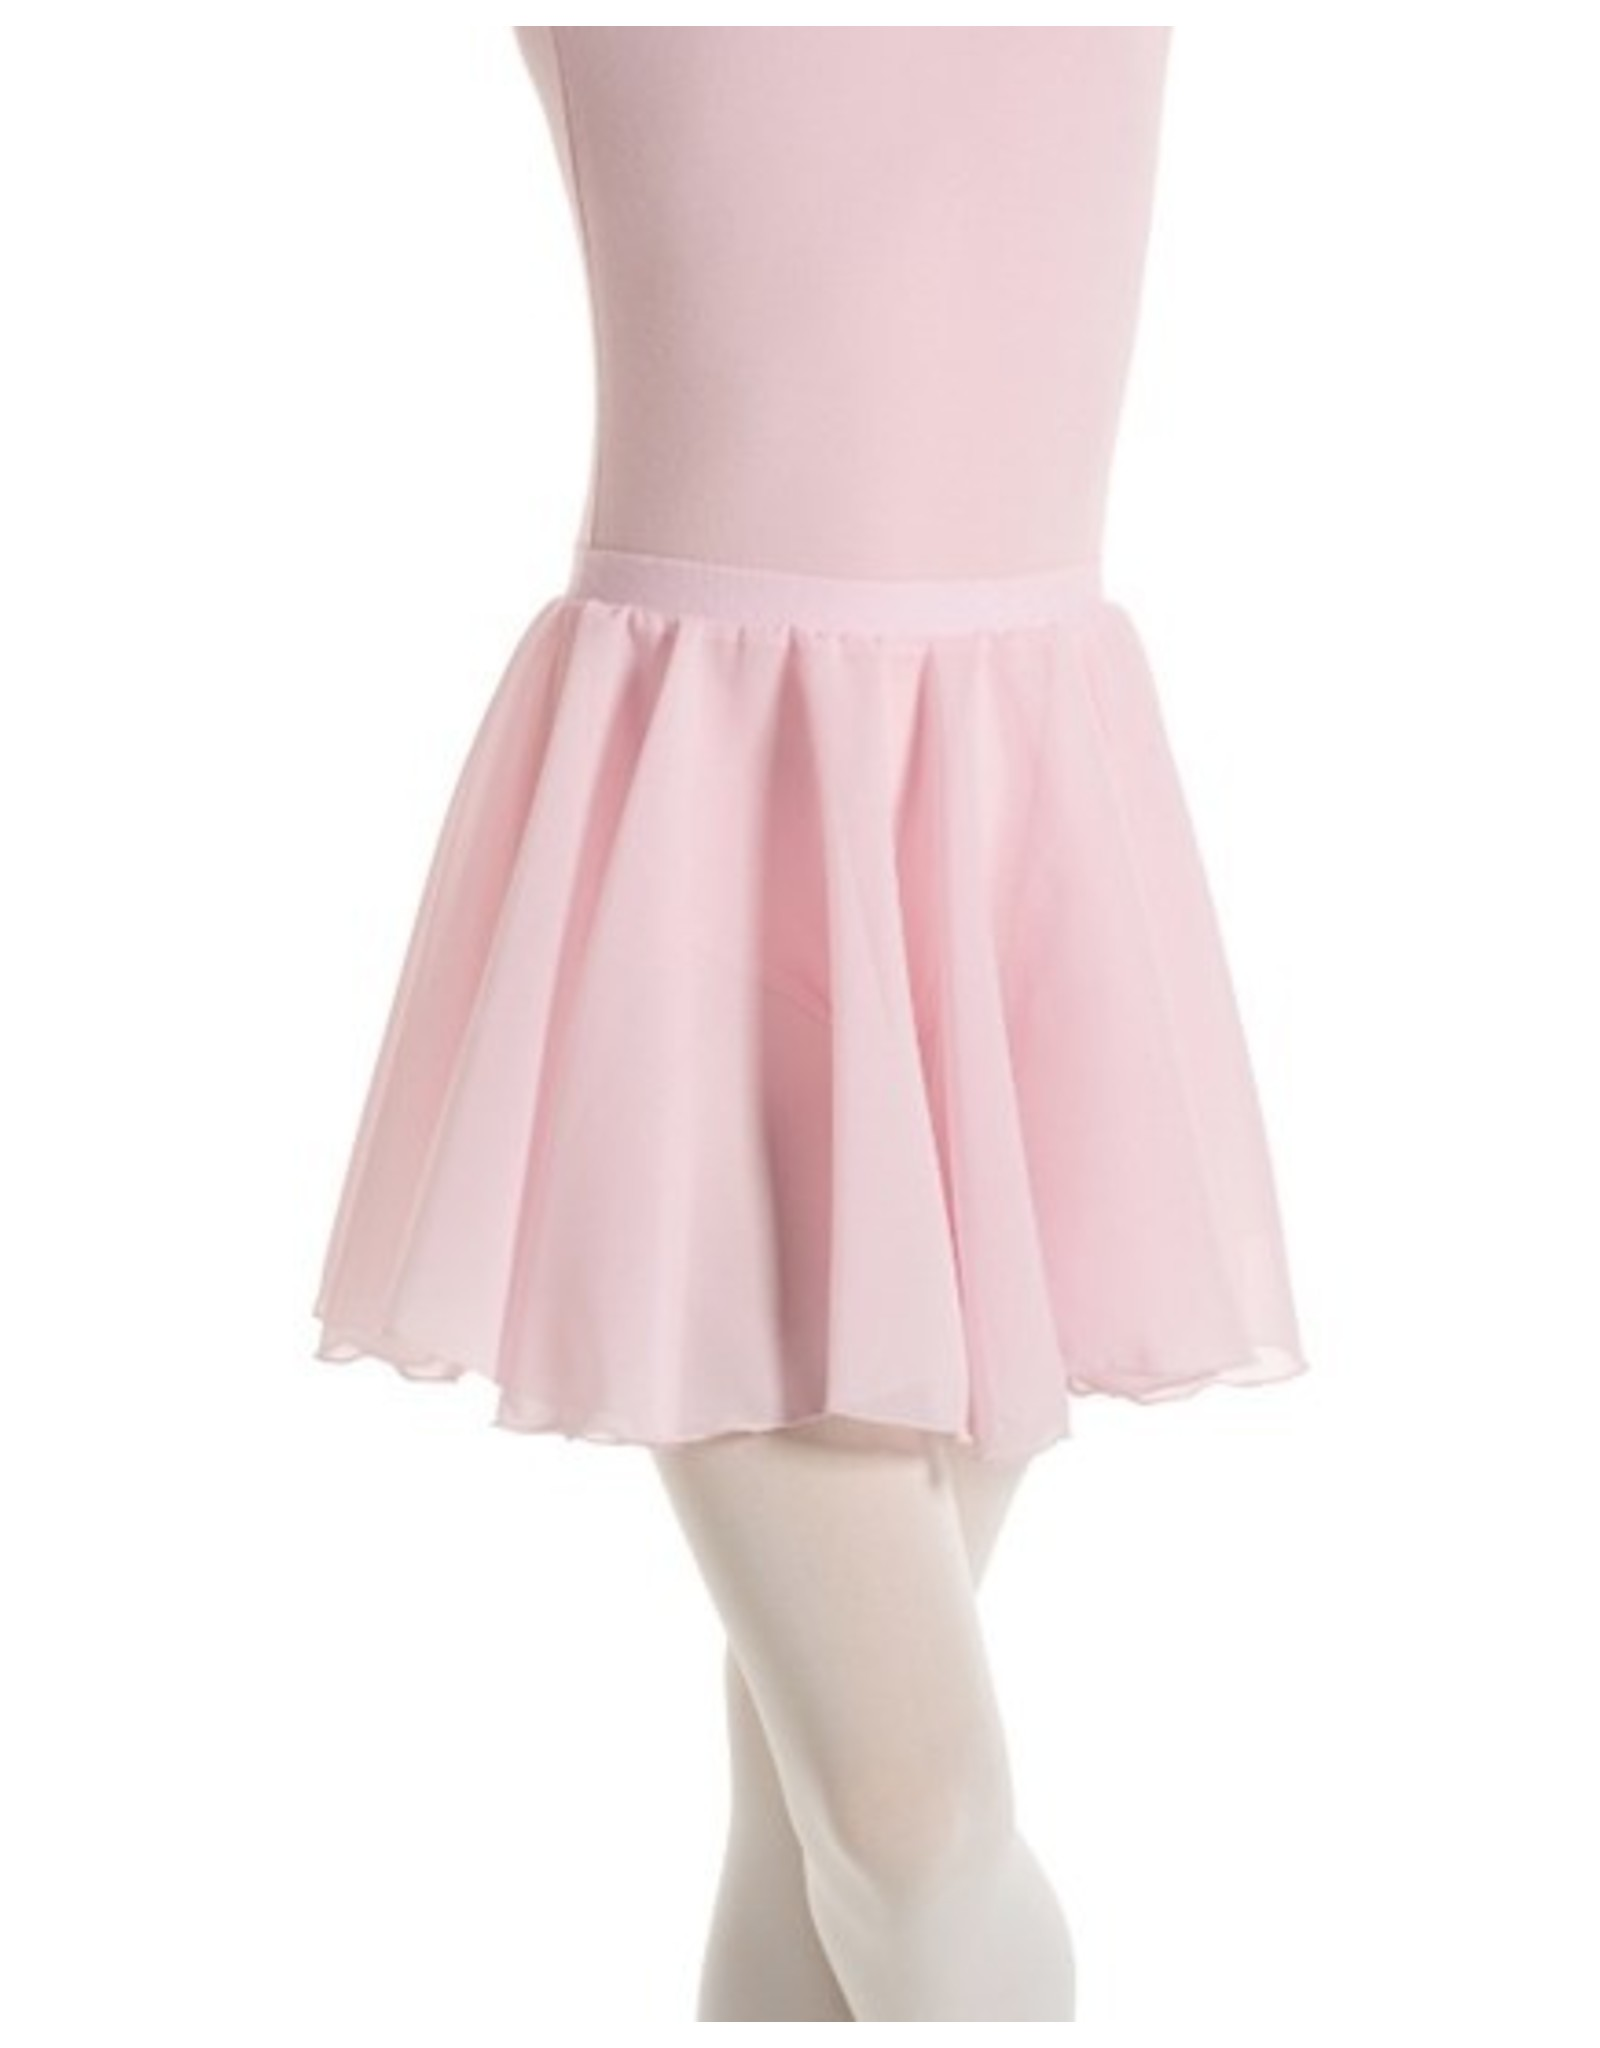 MONDOR ROYAL ACADEMY OF DANCE SKIRT - 16207